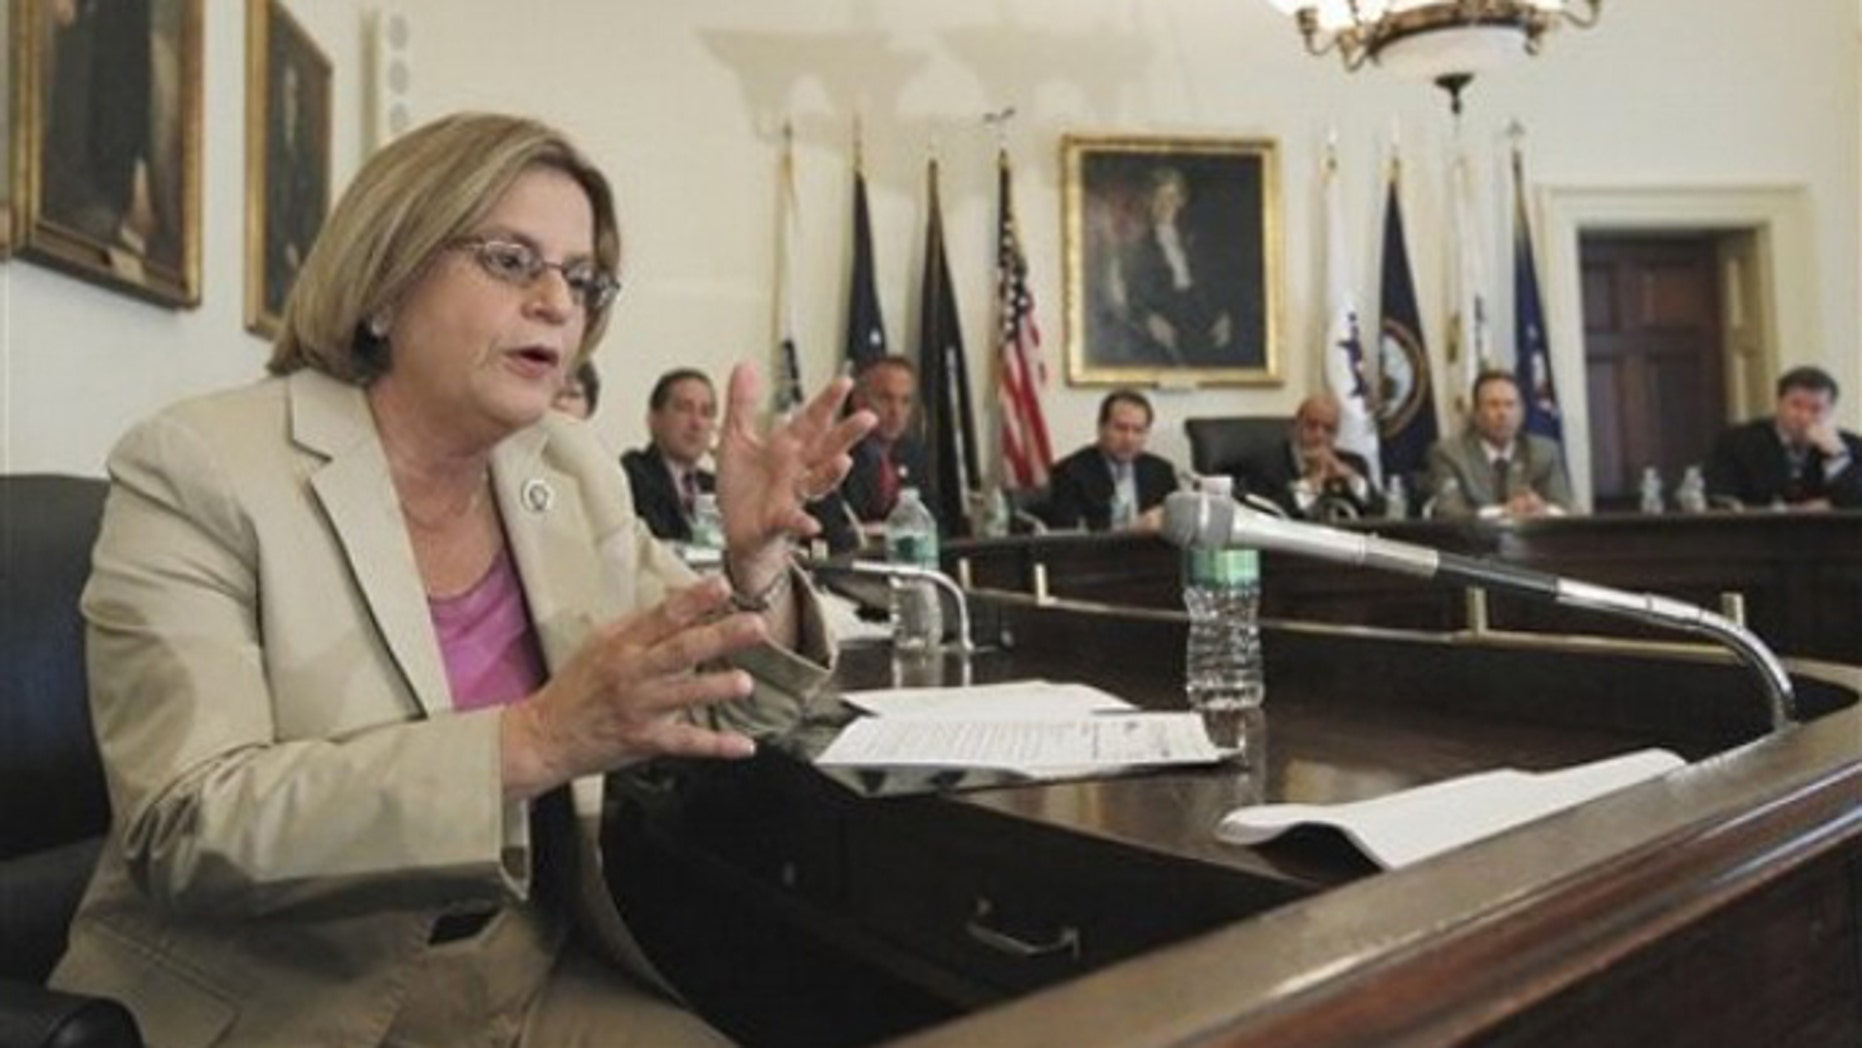 In this May 19, 2010, file photo, Rep. Ileana Ros-Lehtinen, left, gestures during a meeting on Capitol Hill.